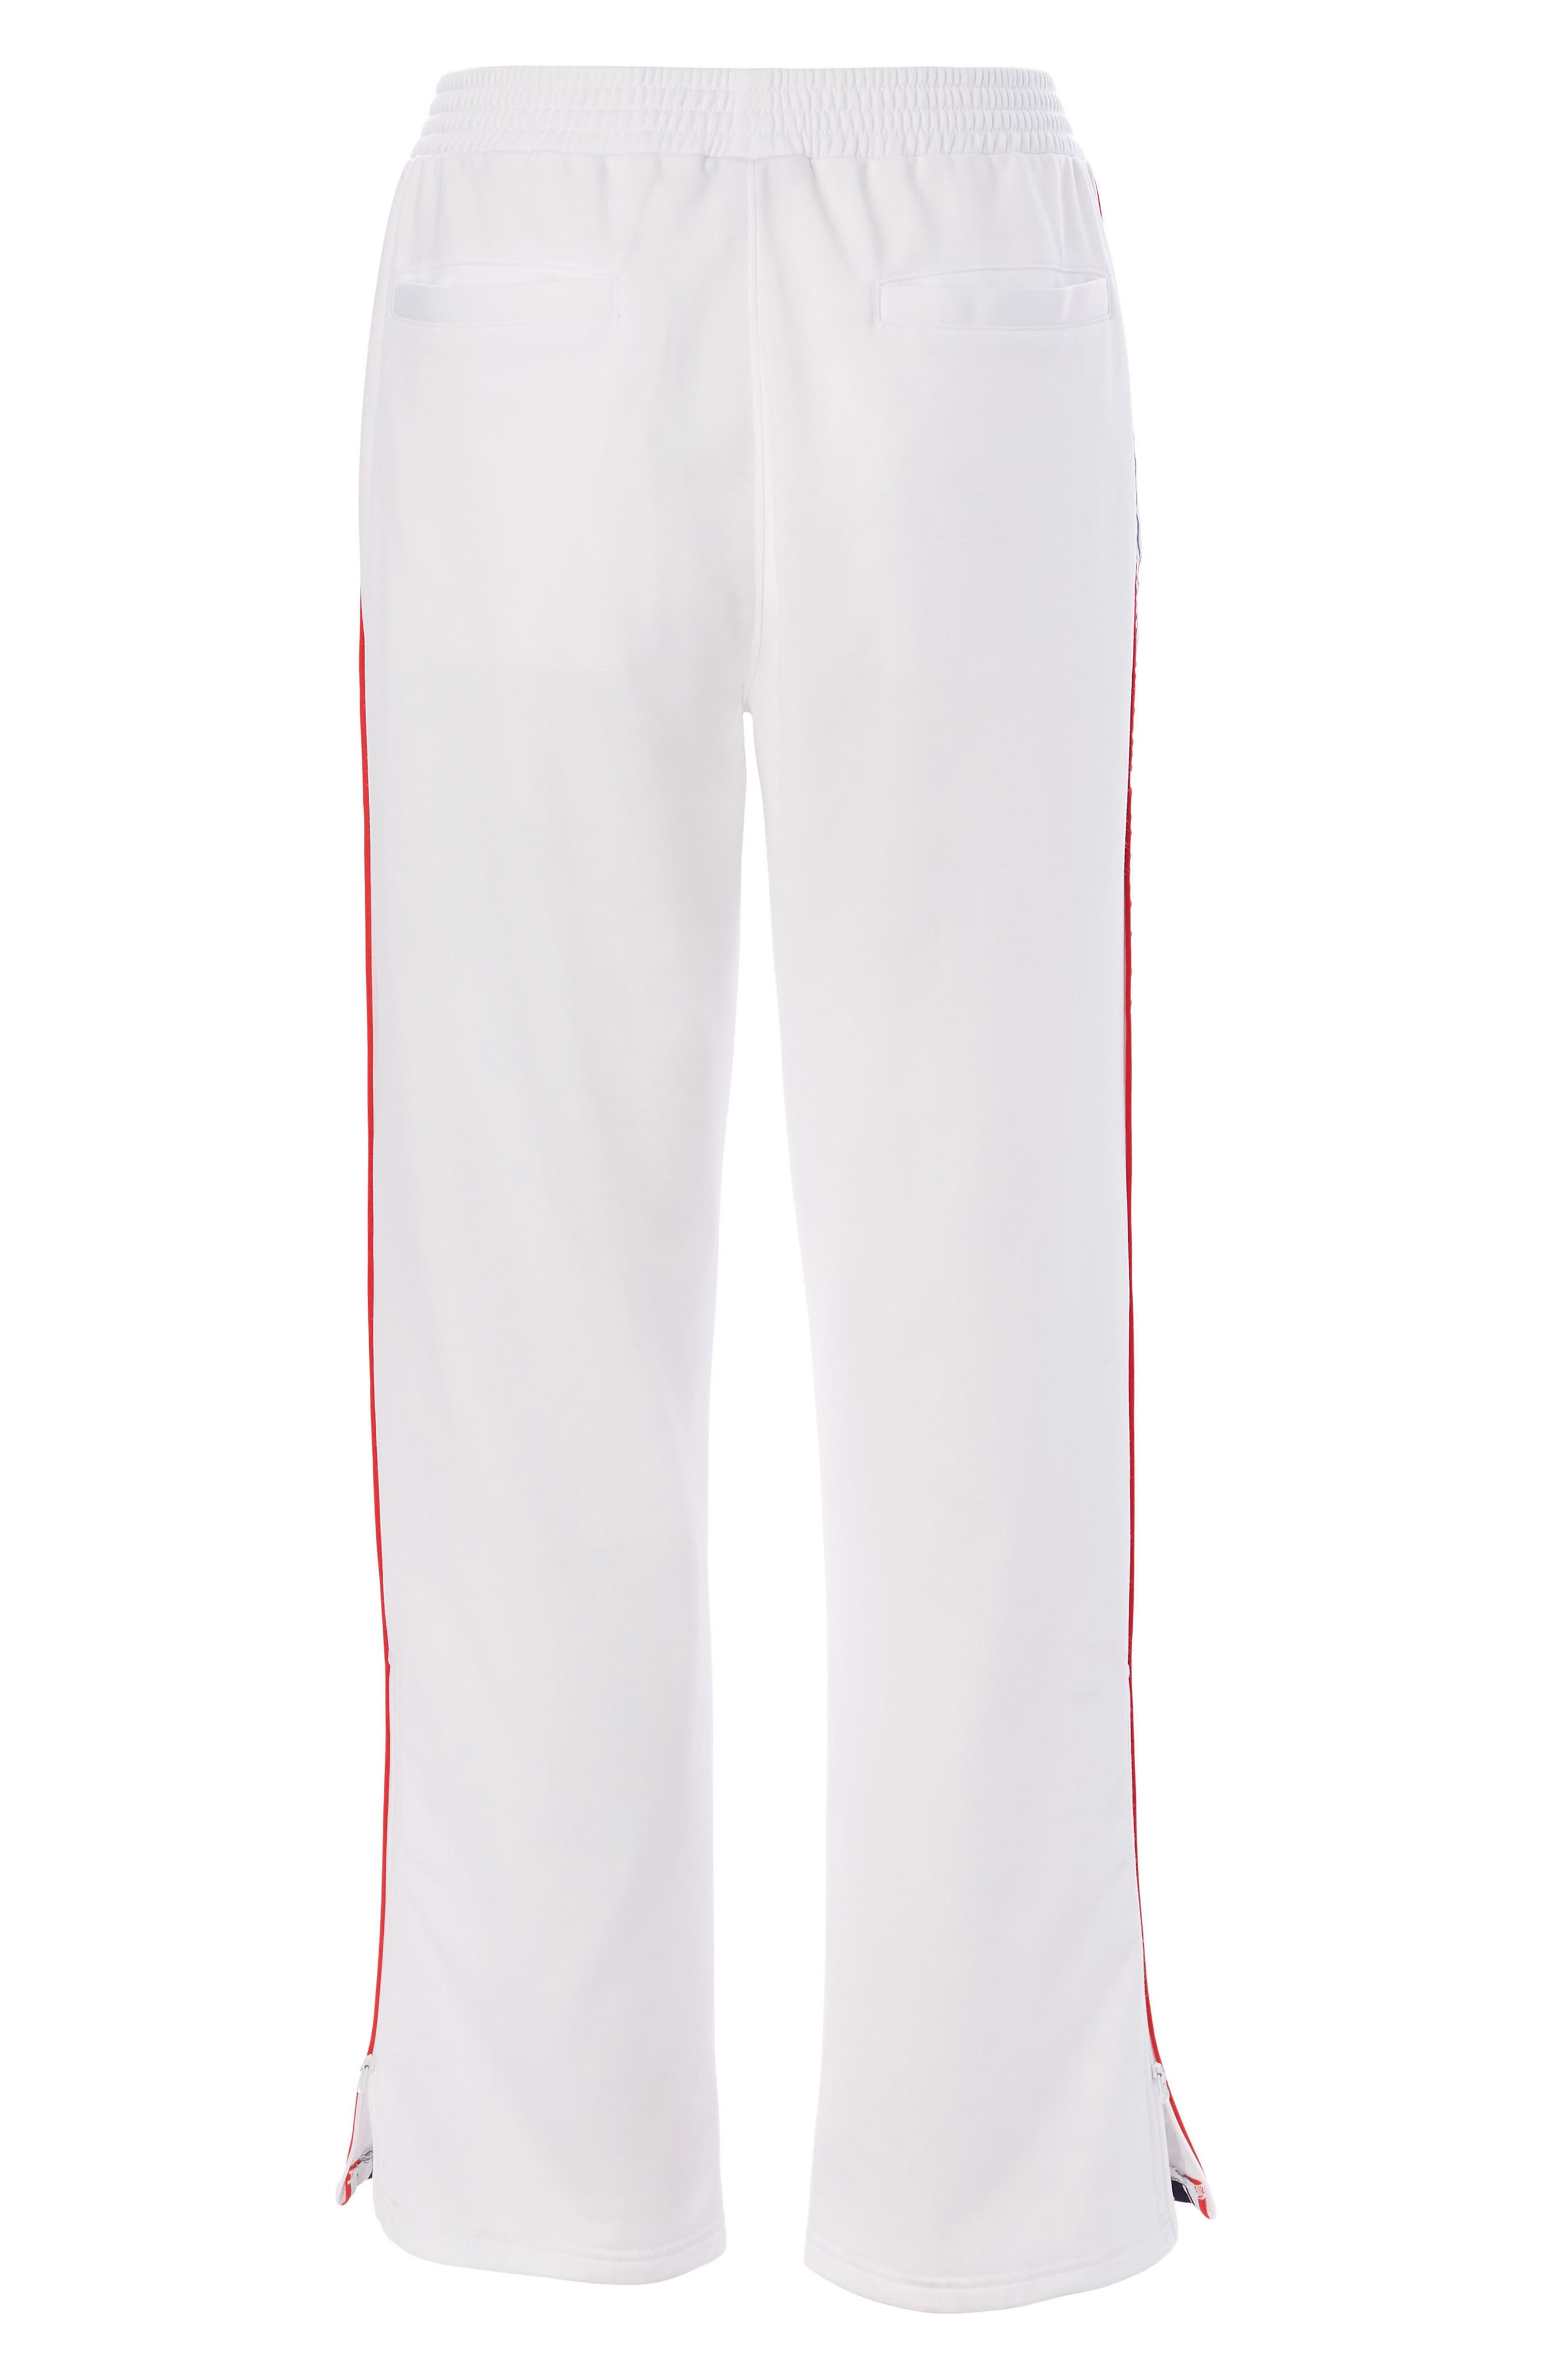 CHAMPION, Logo Tape Track Pants, Alternate thumbnail 6, color, WHITE